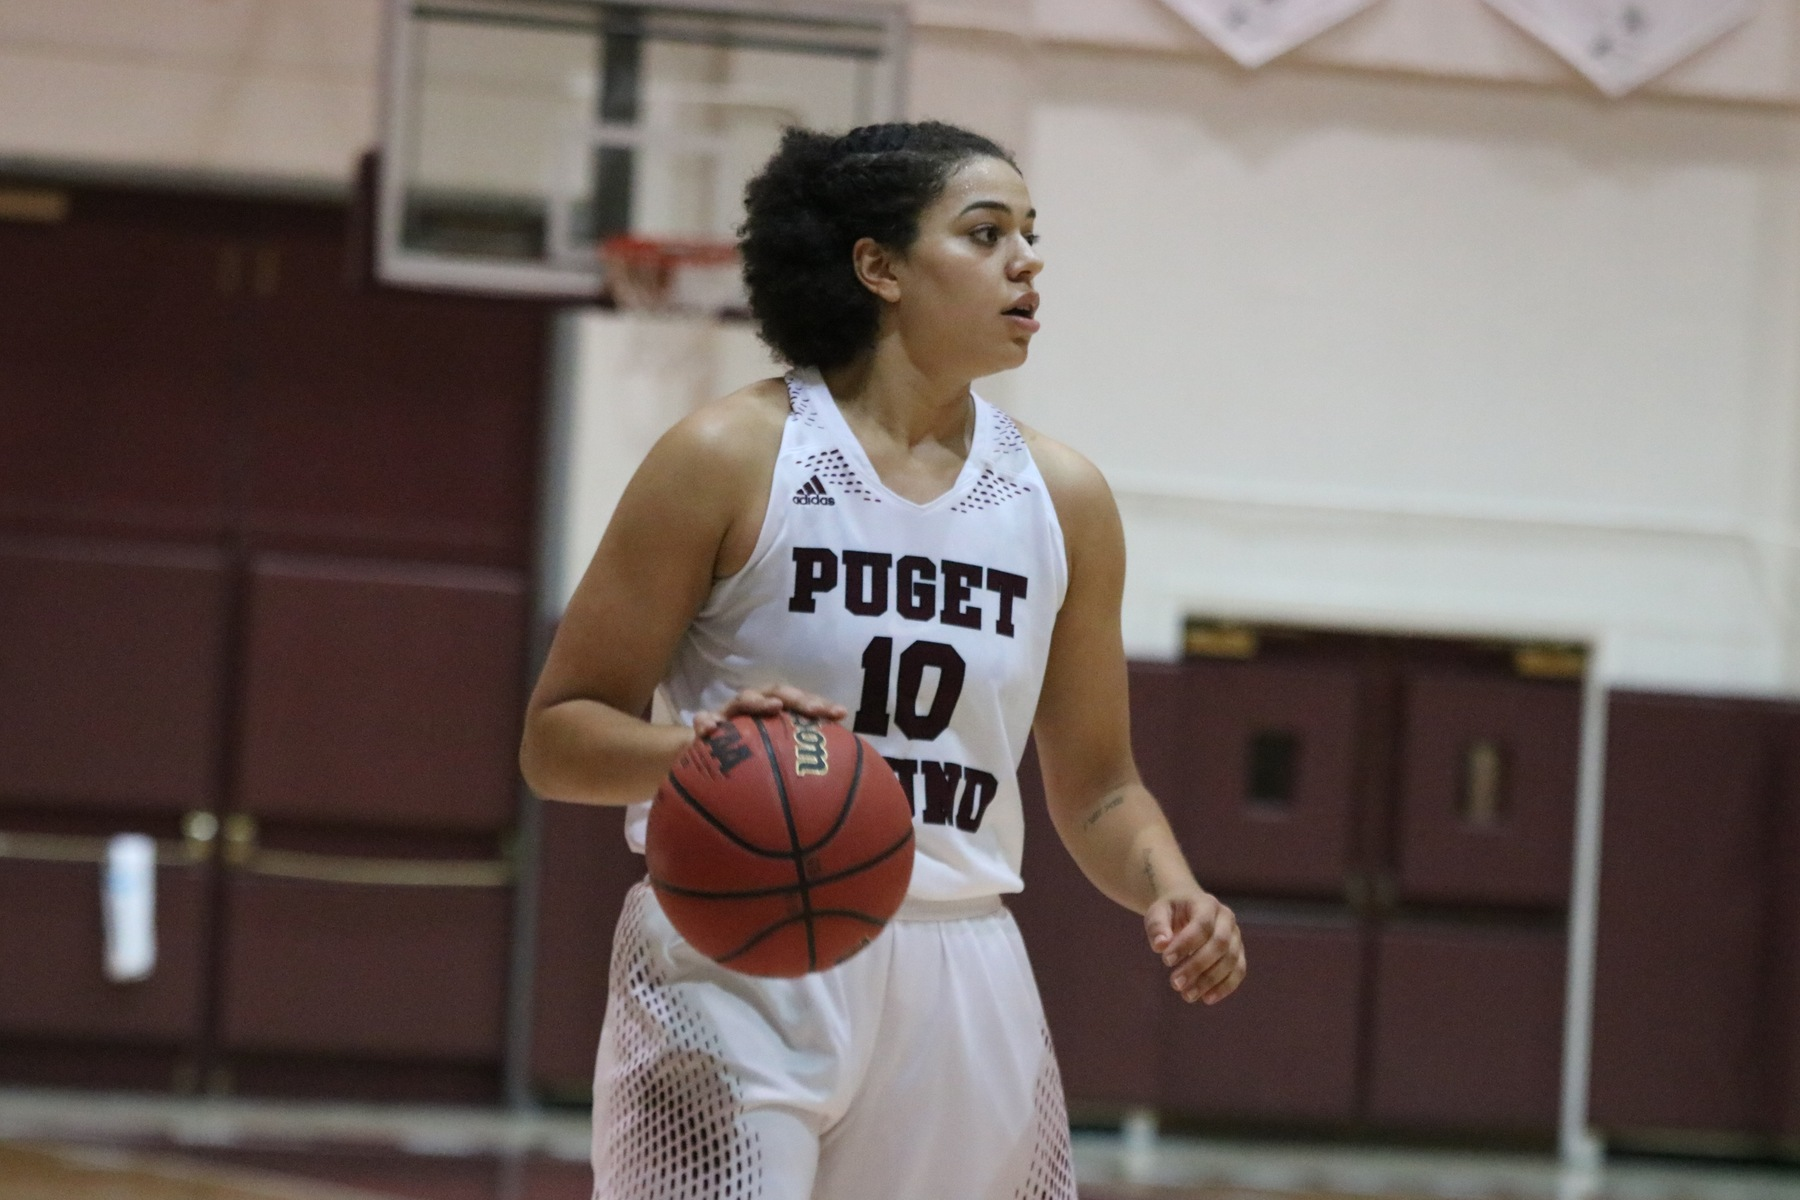 Five Loggers score in double figures to beat Pioneers, 77-65